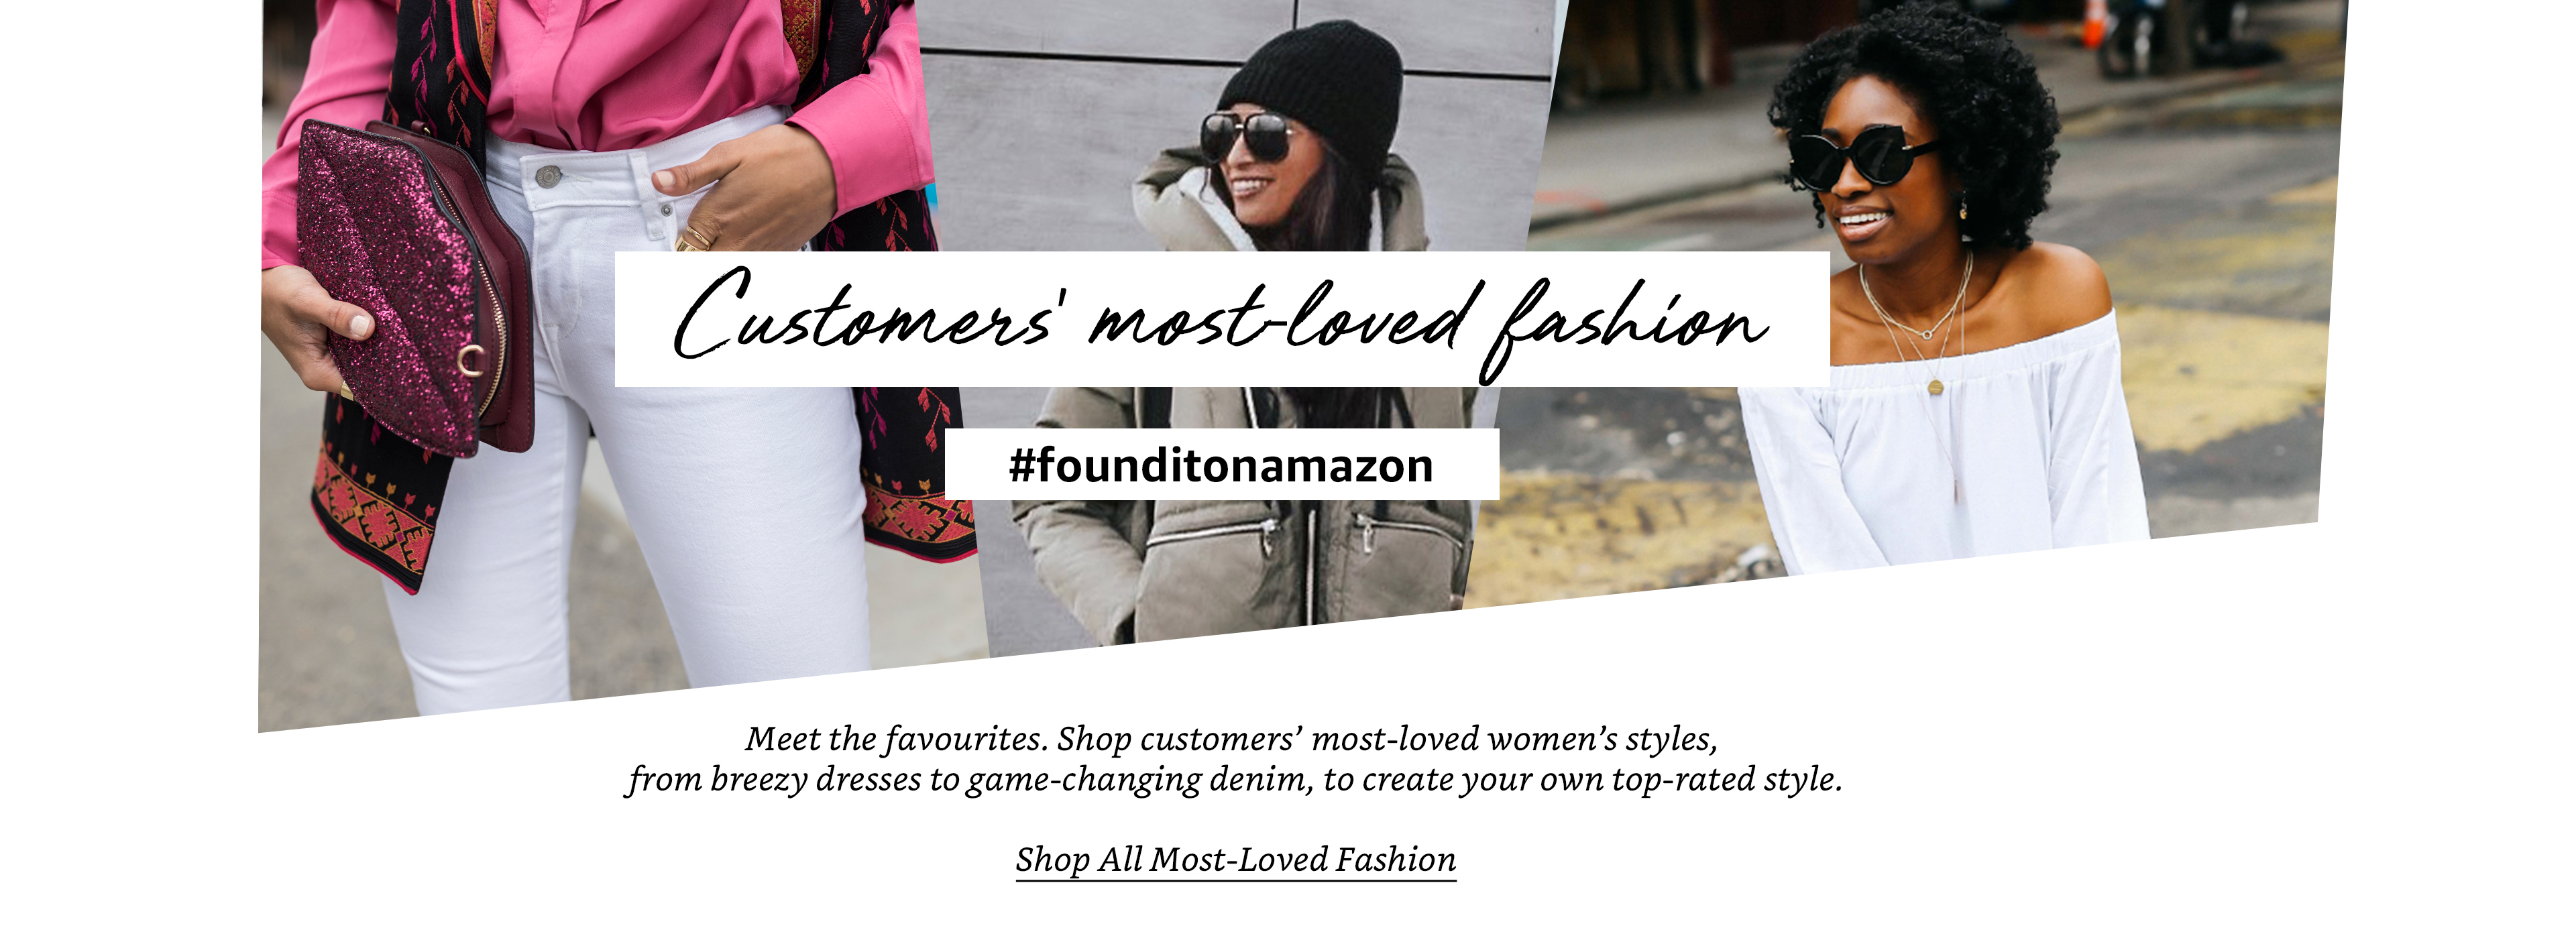 Women's most-loved fashion